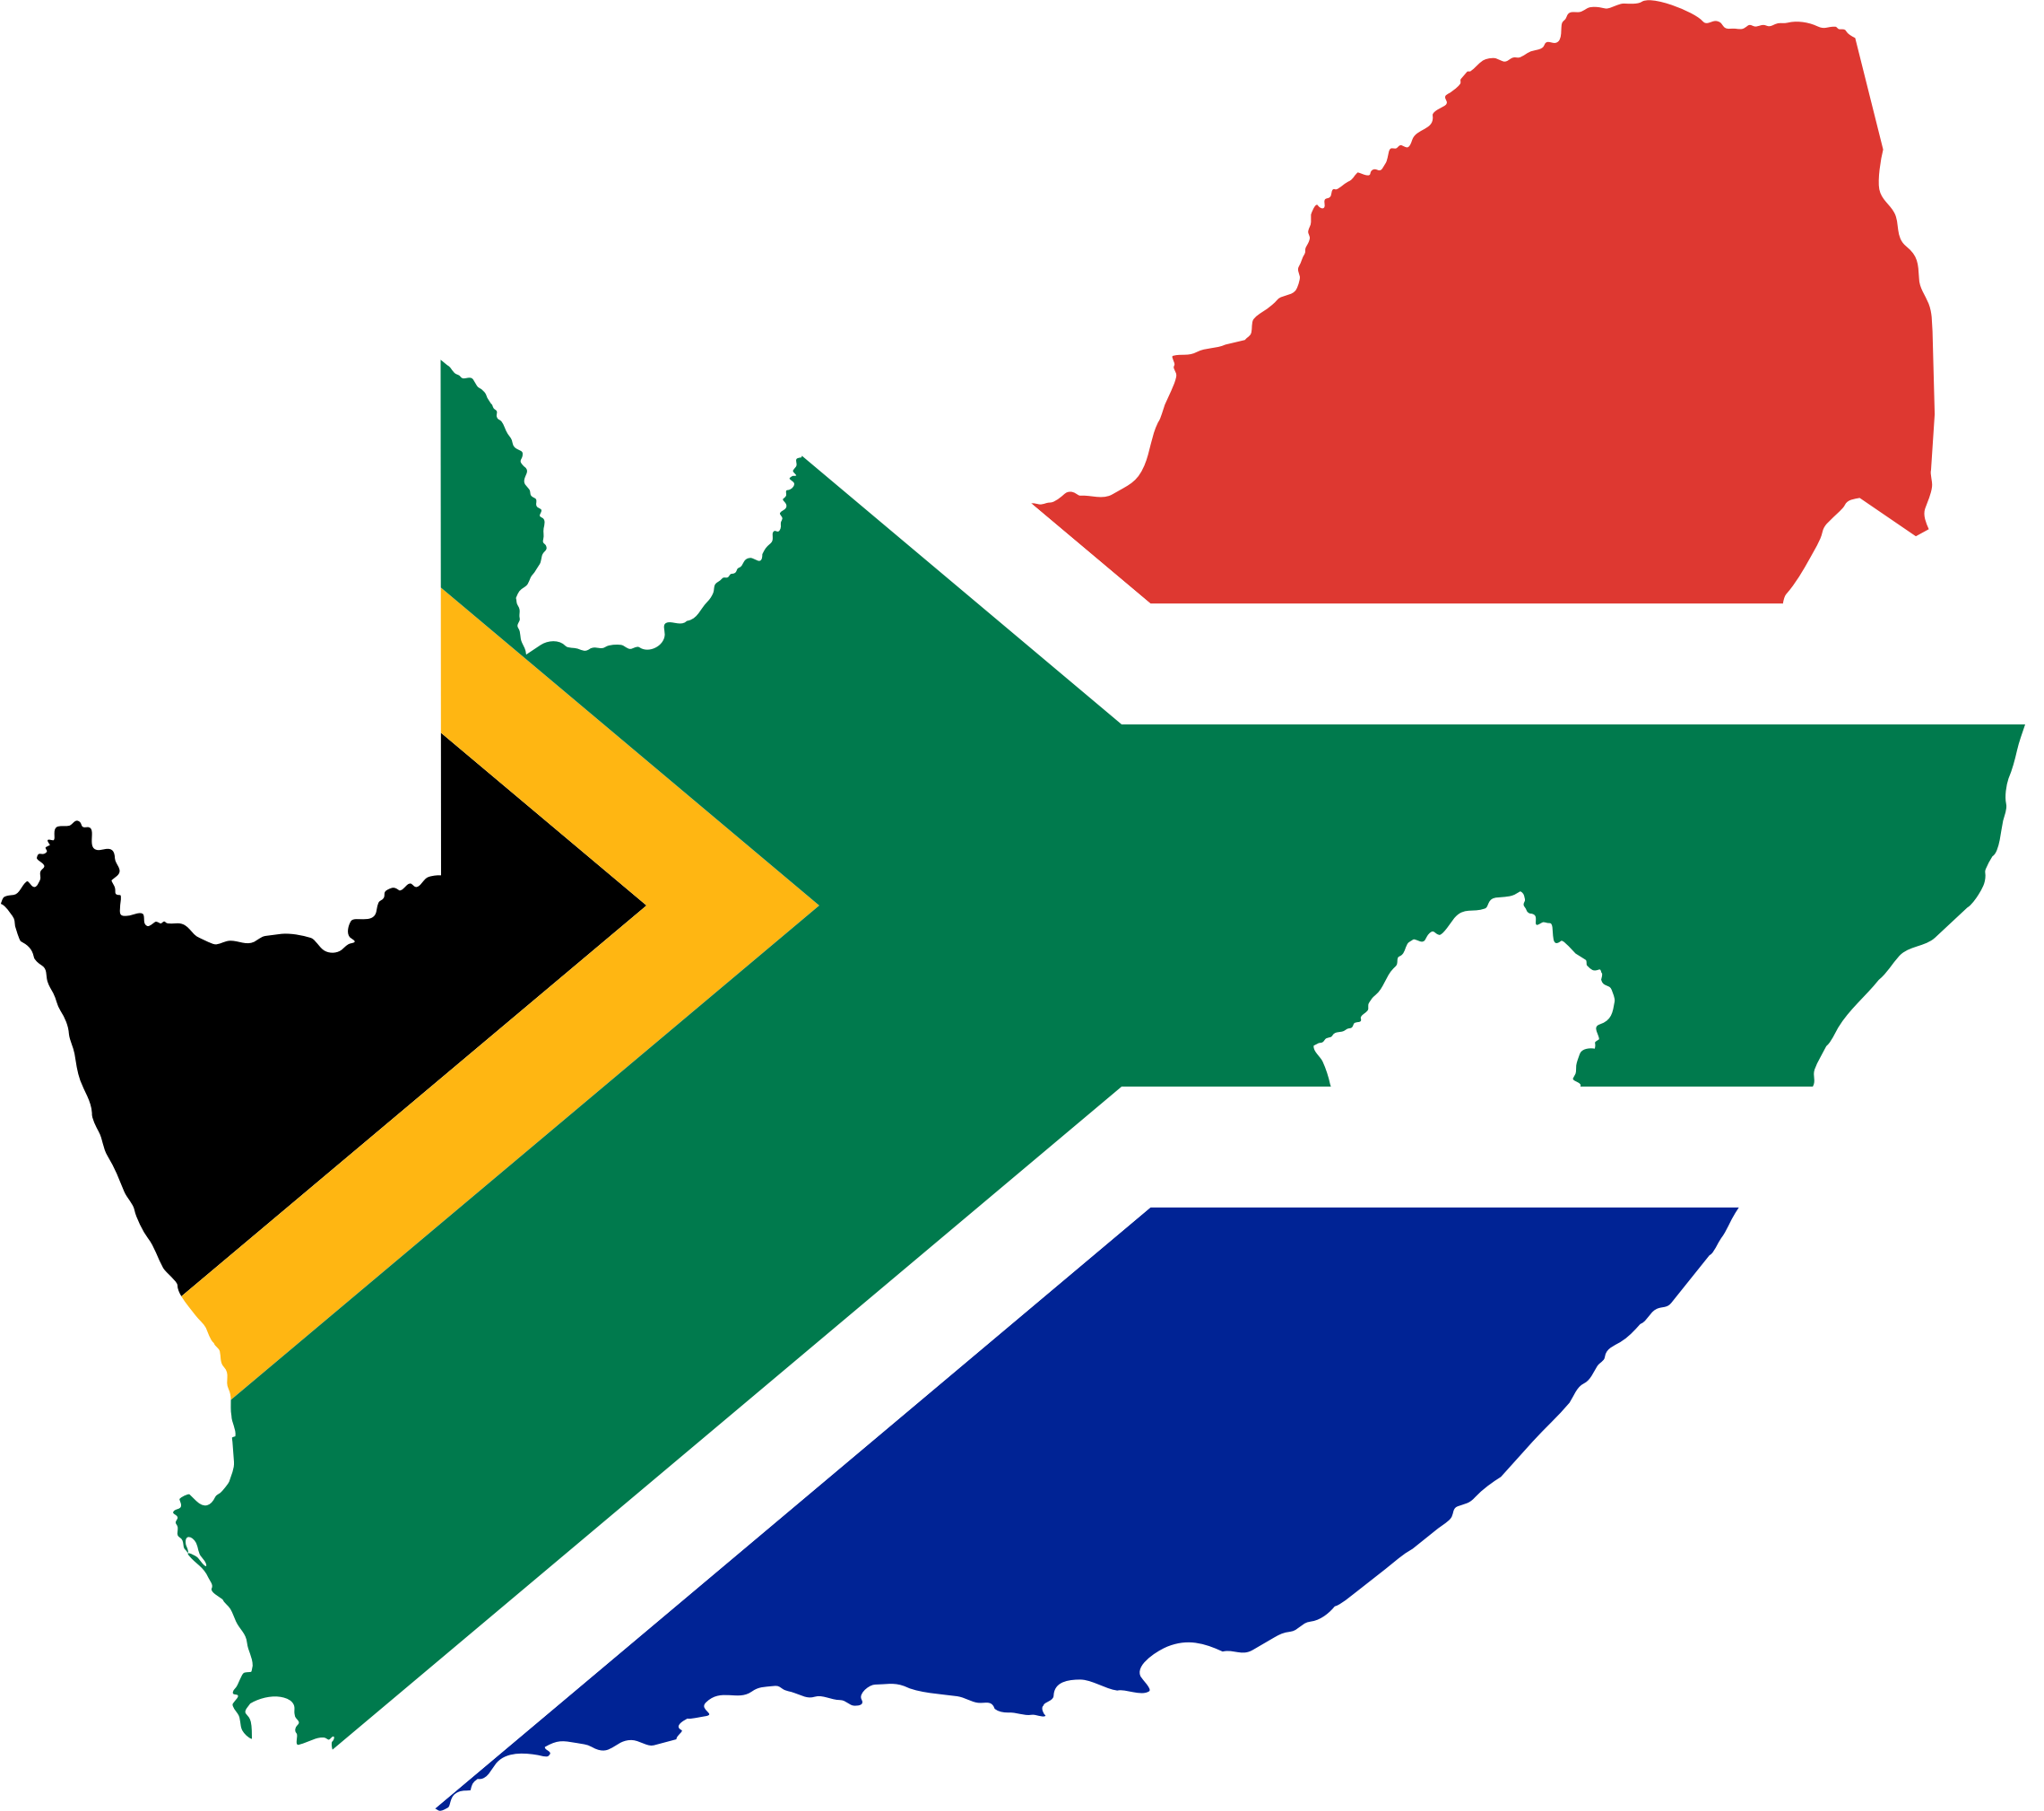 South Africa Flag Map by GDJ